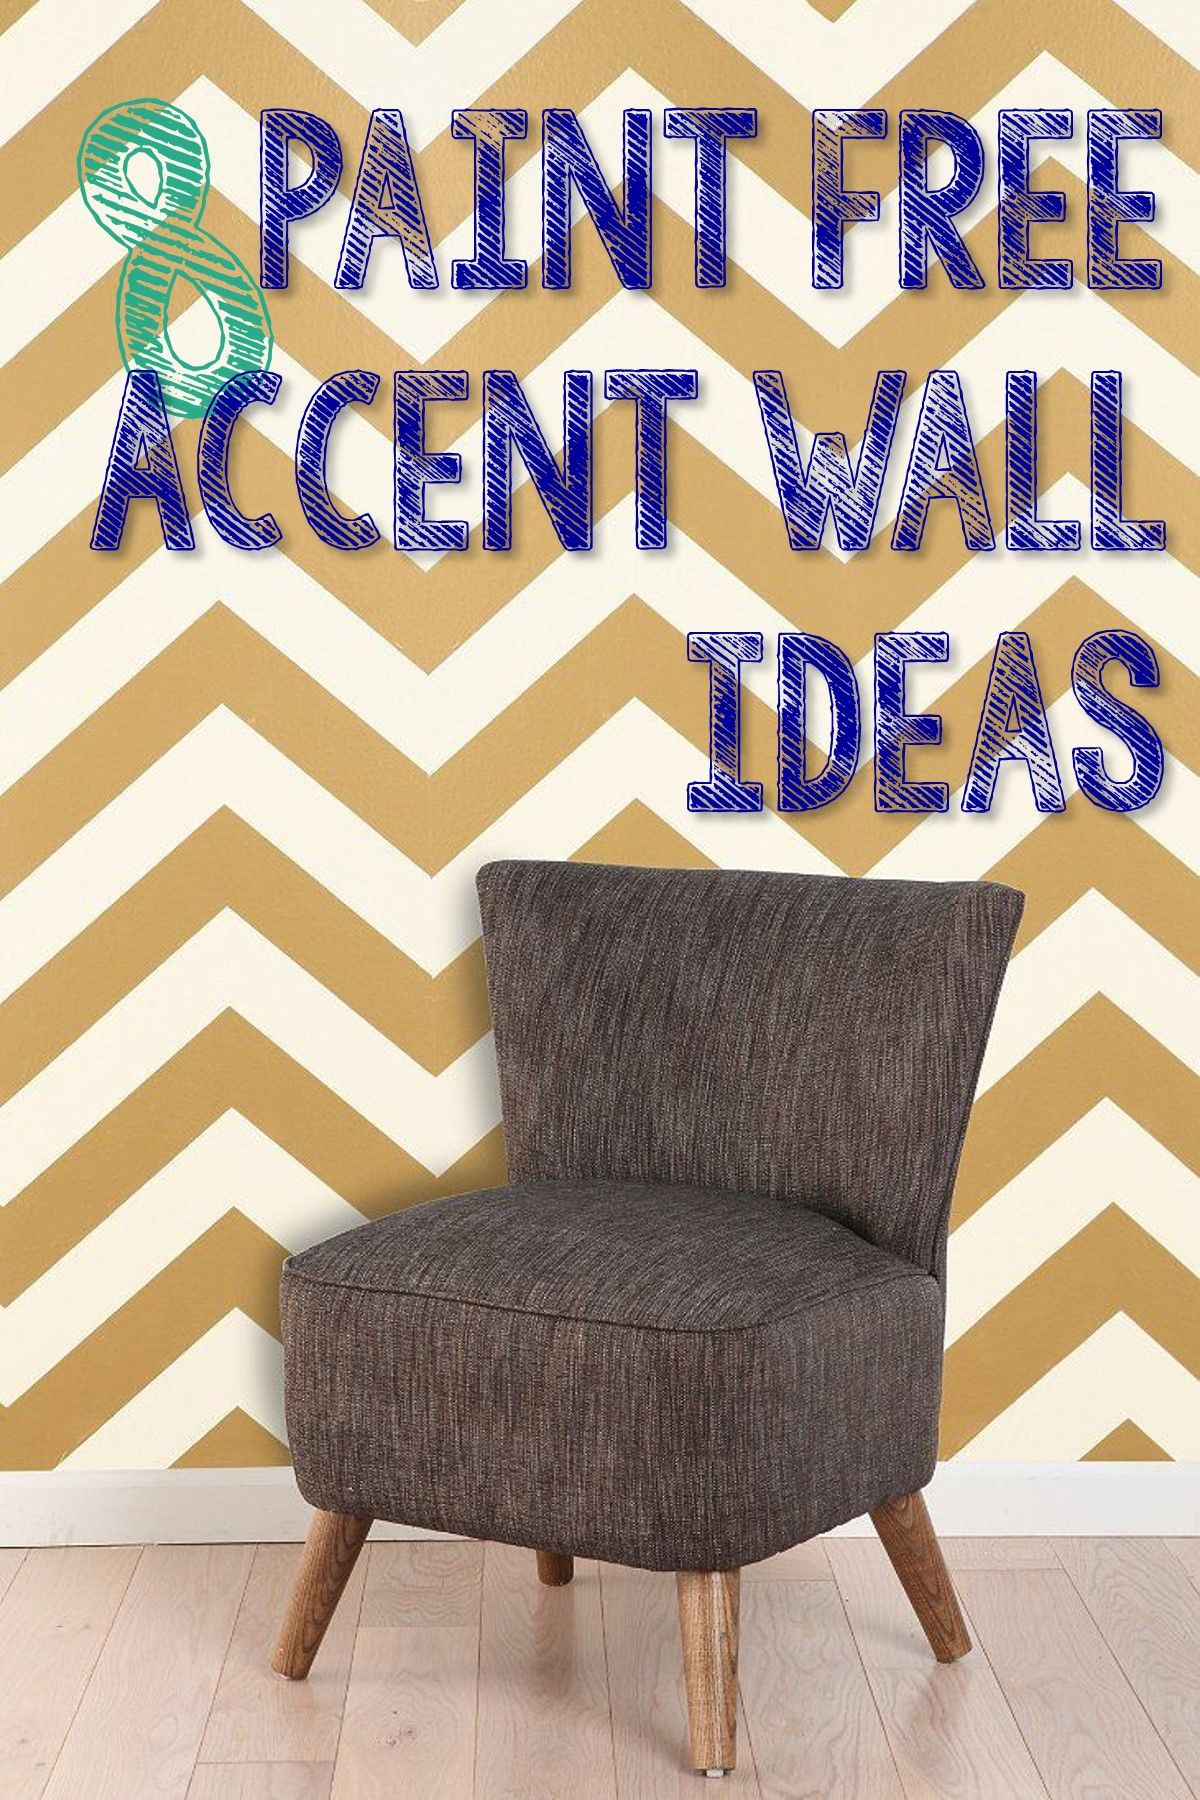 8 paint free accent wall ideas decor home decor home diy on accent wall ideas id=30012